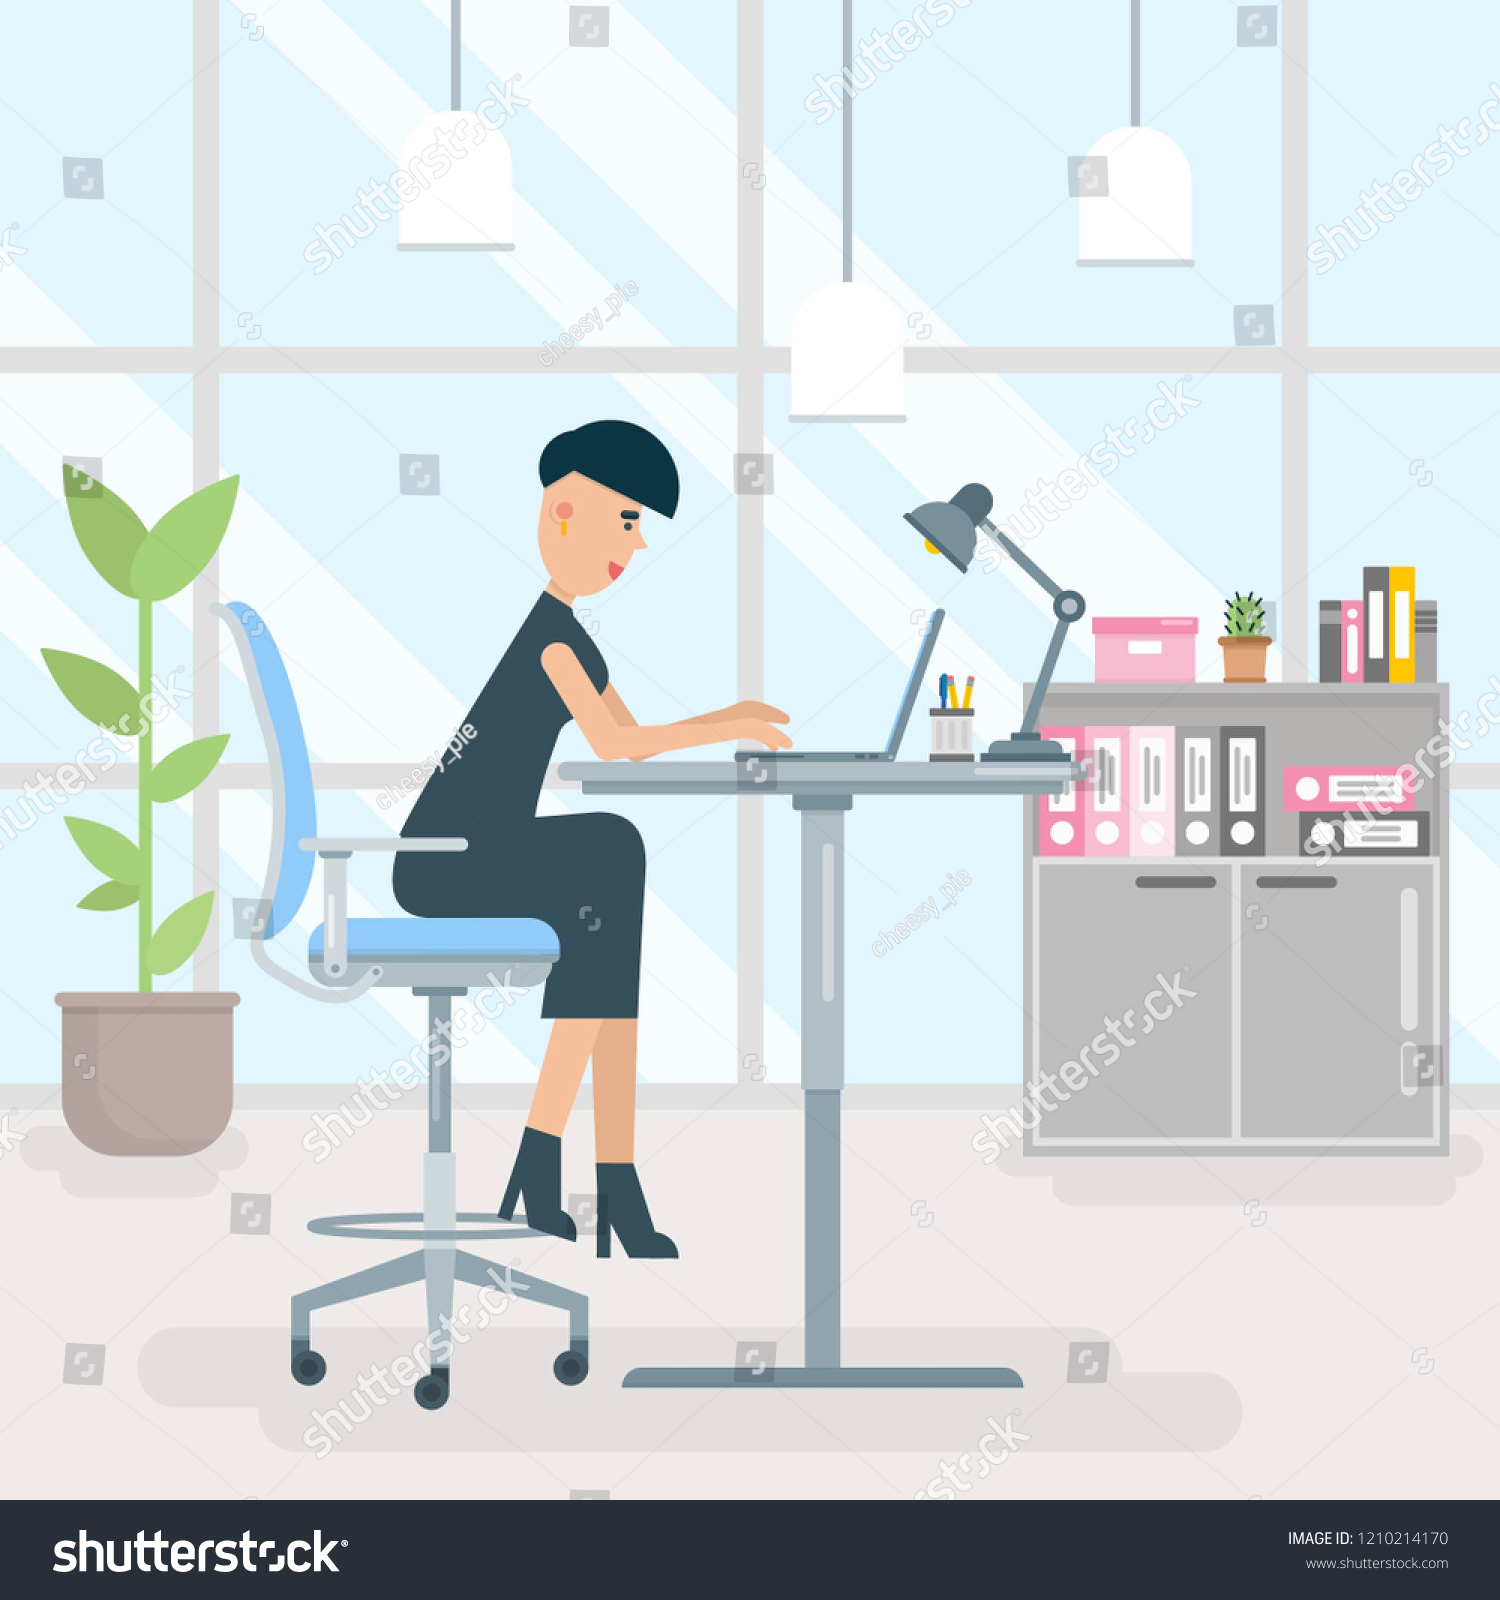 Image of: Young Brunette Business Woman Employee Secretary Stock Vector Royalty Free 1210214170